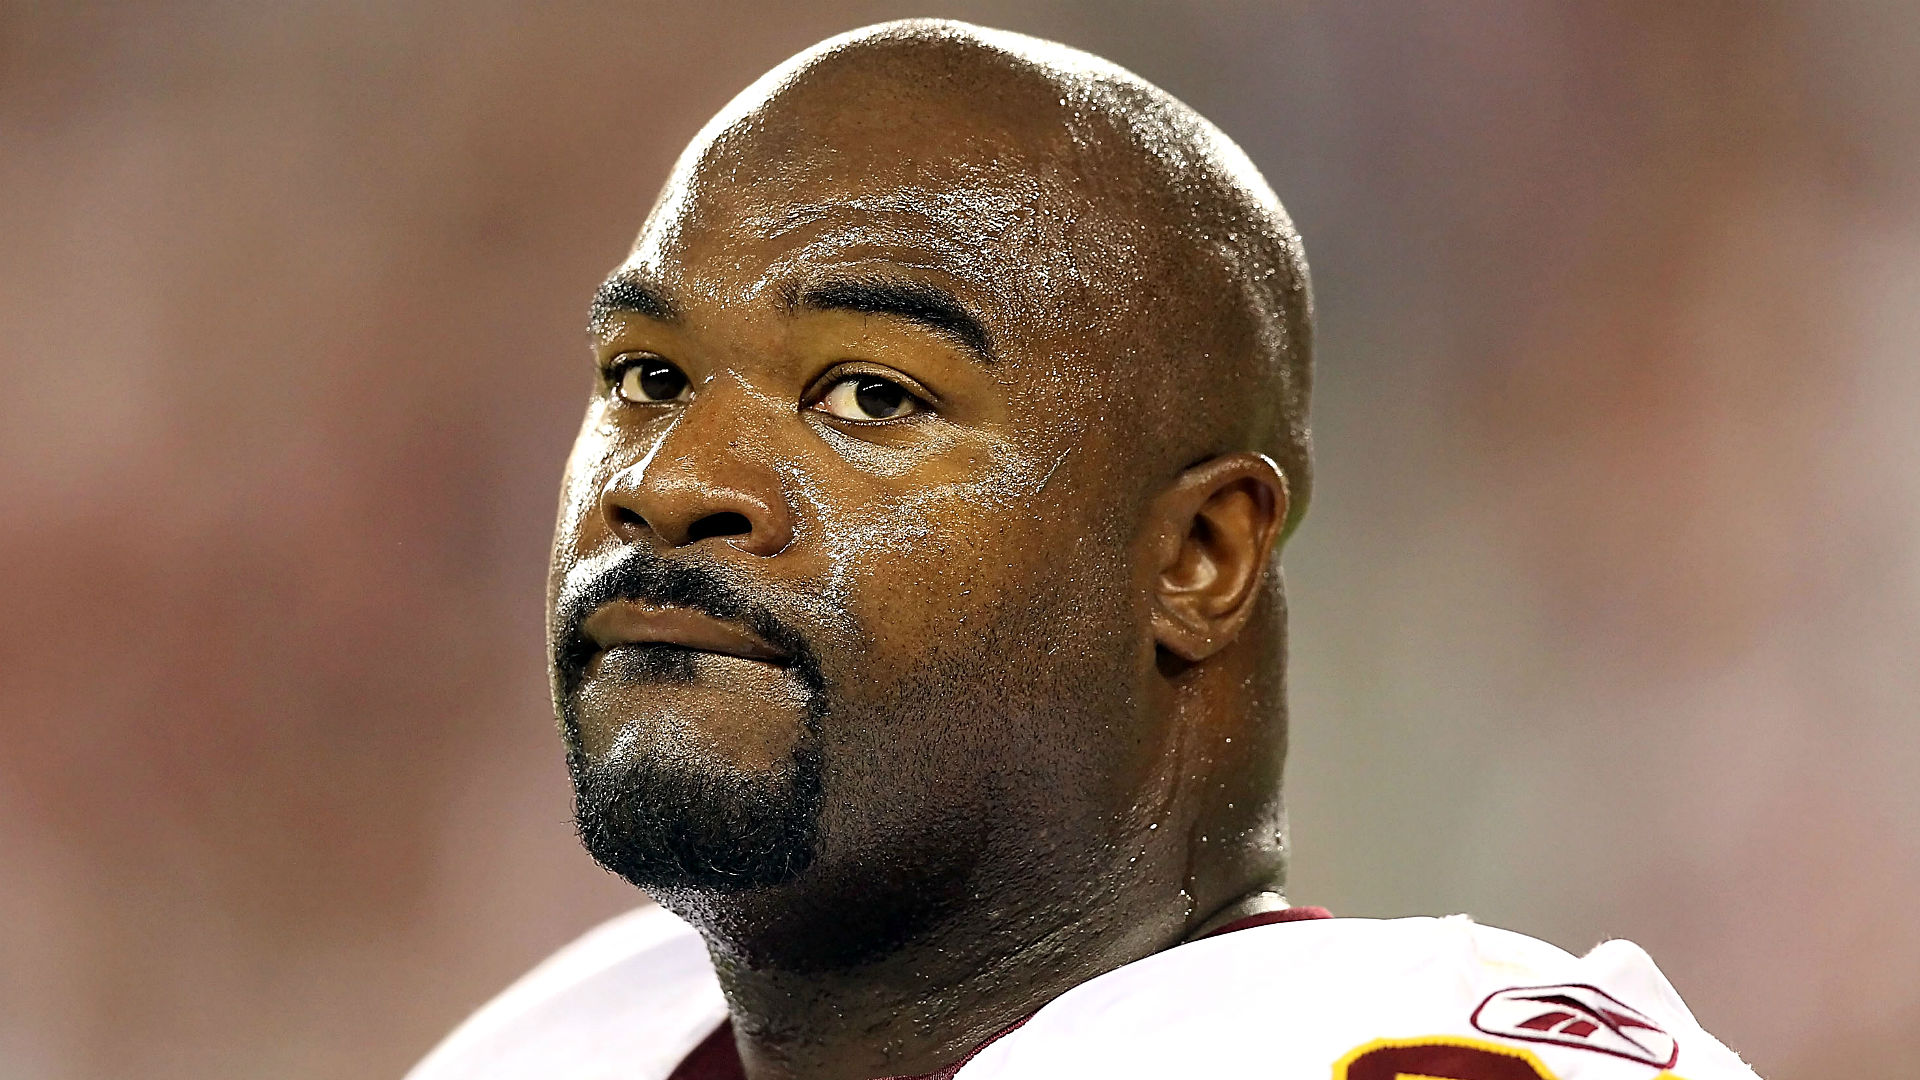 haynesworth-albert-030515-usnews-getty-ftr